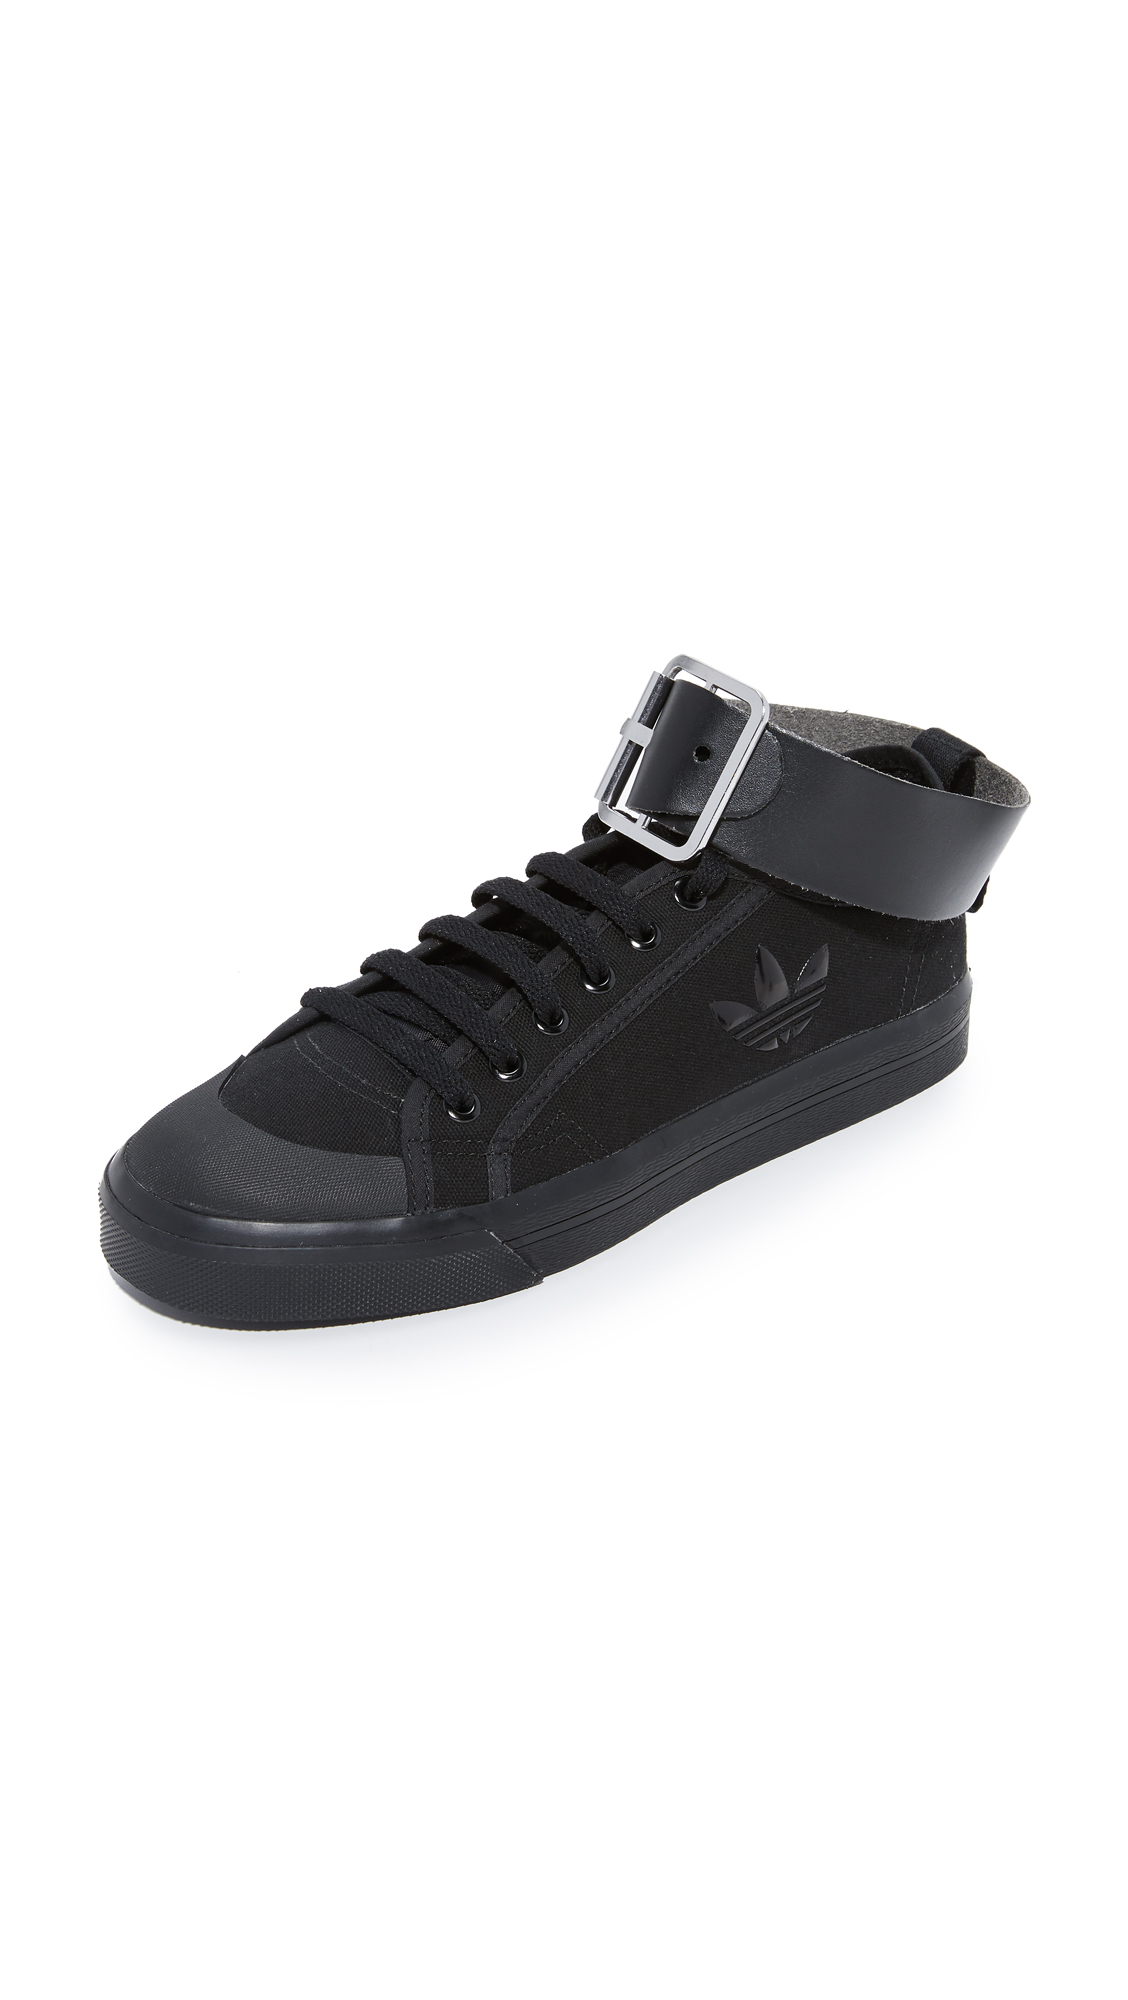 Adidas Raf Simons Spirit Buckle Sneakers - Black/Black/Bright Yellow at Shopbop